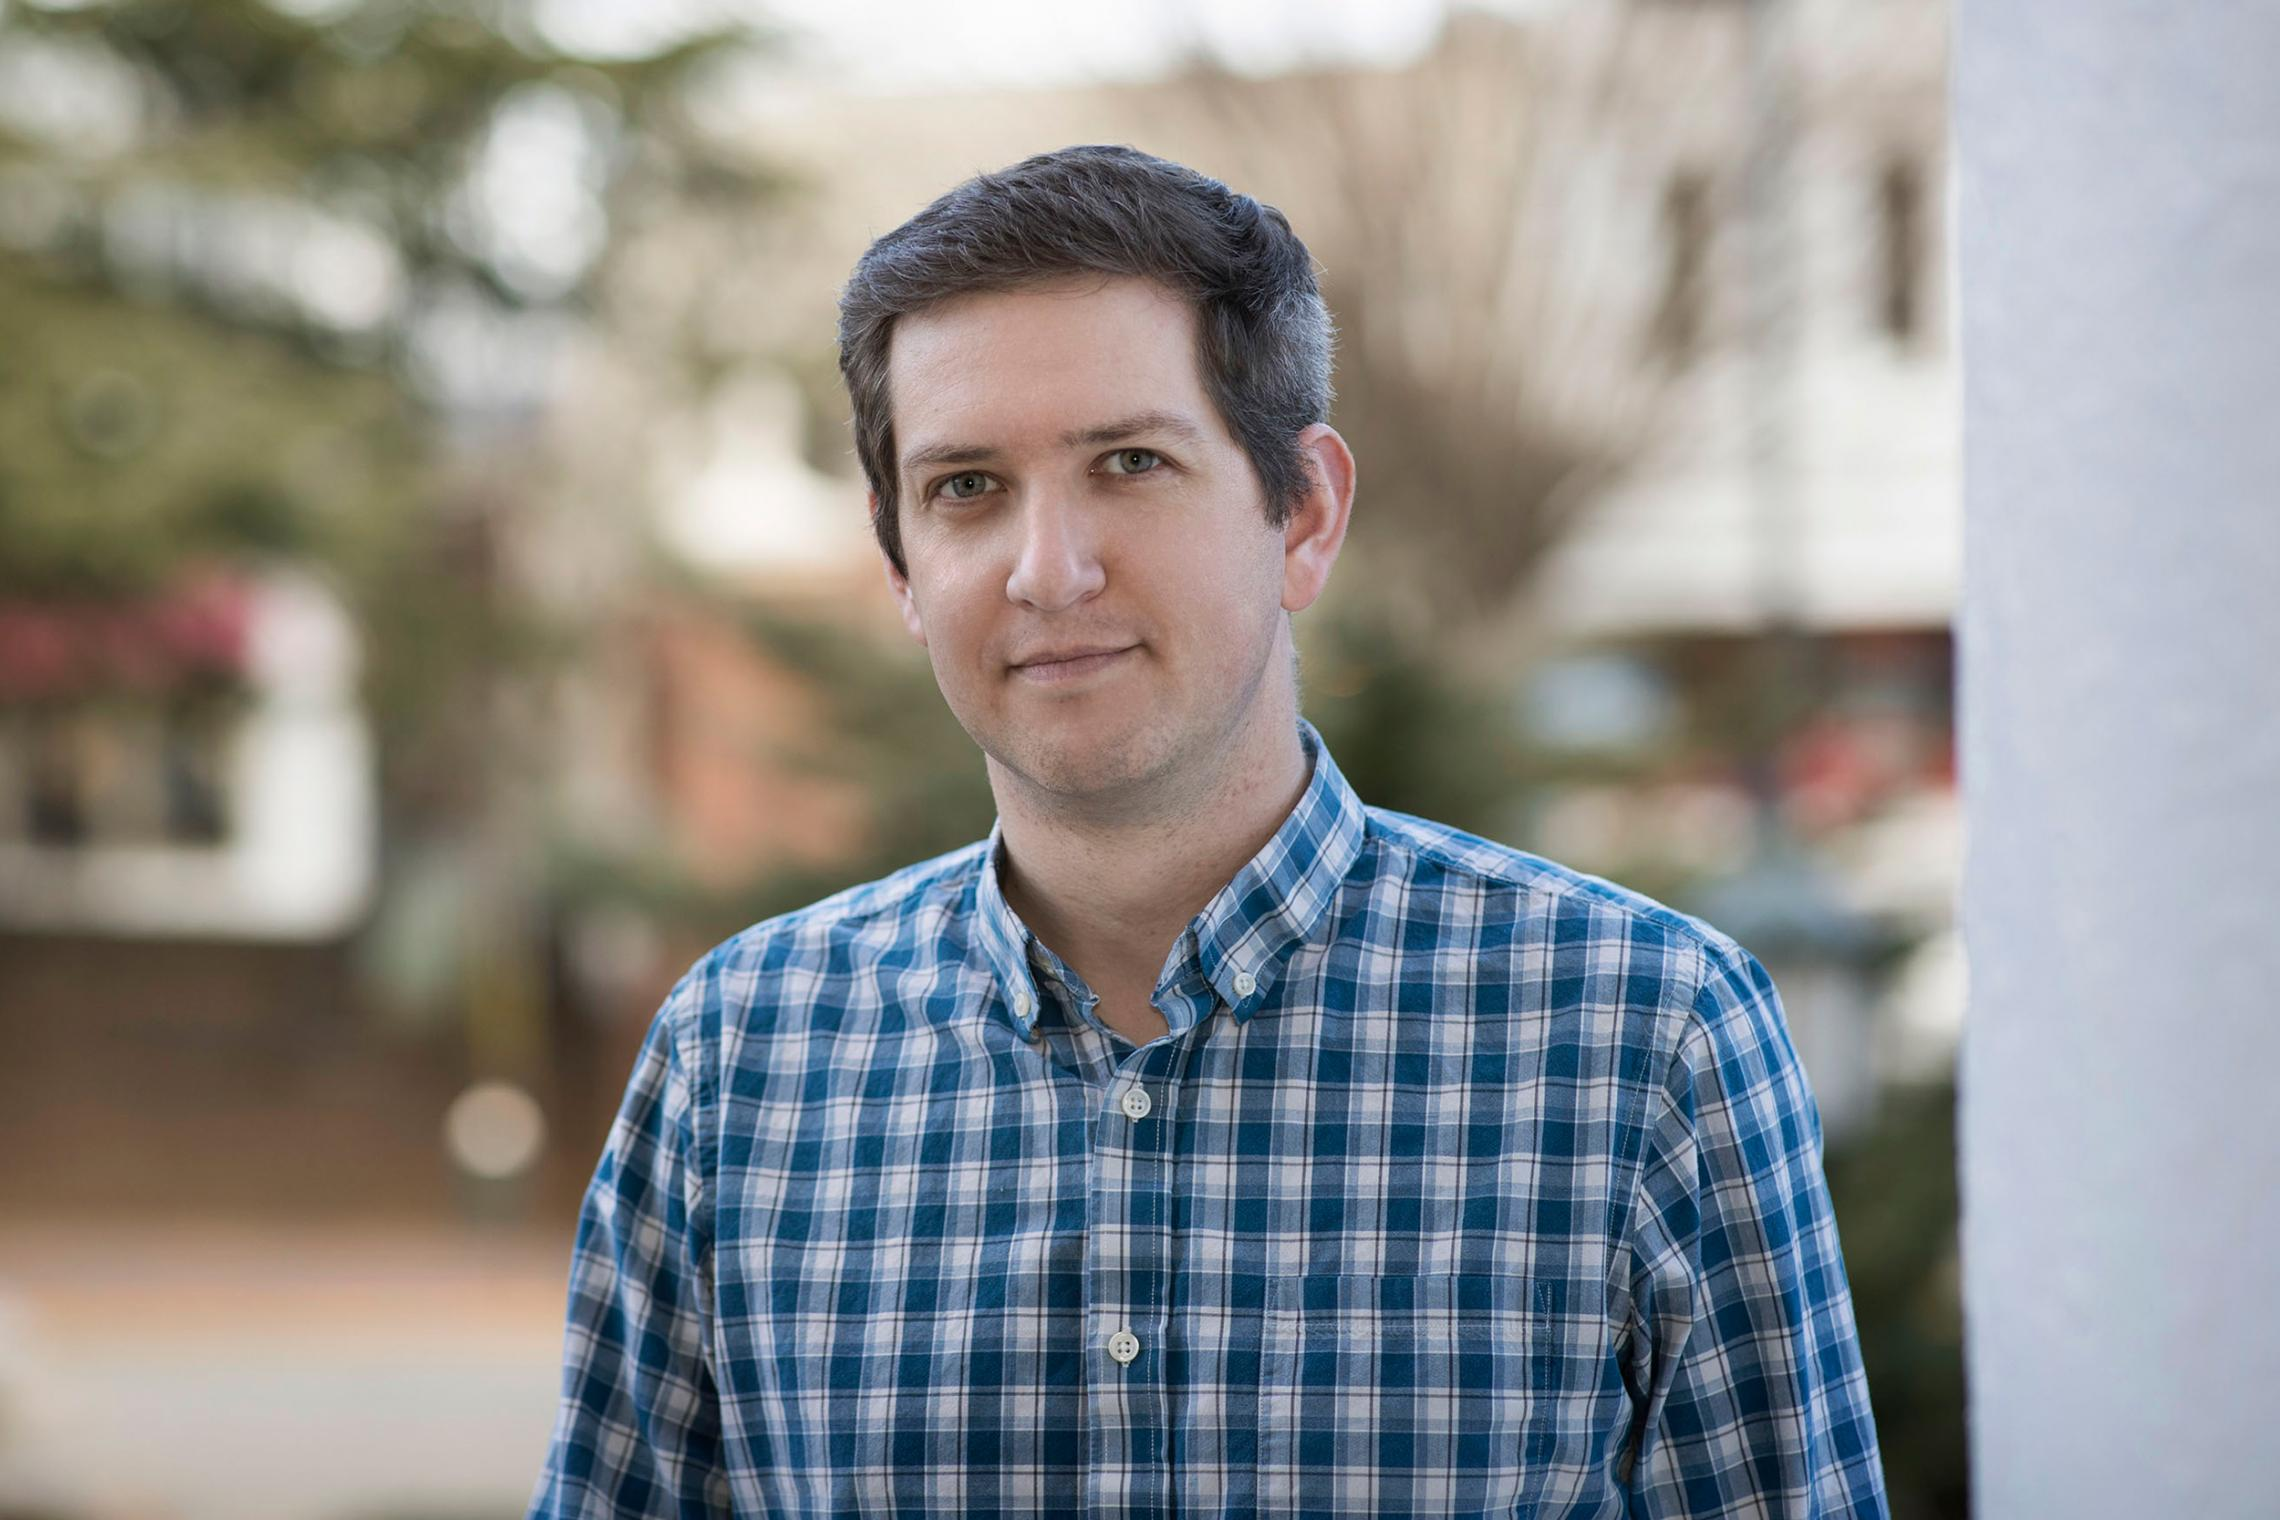 Andy Hales is a postdoctoral researcher in the Frank Batten School of Leadership and Public Policy at the University of Virginia.